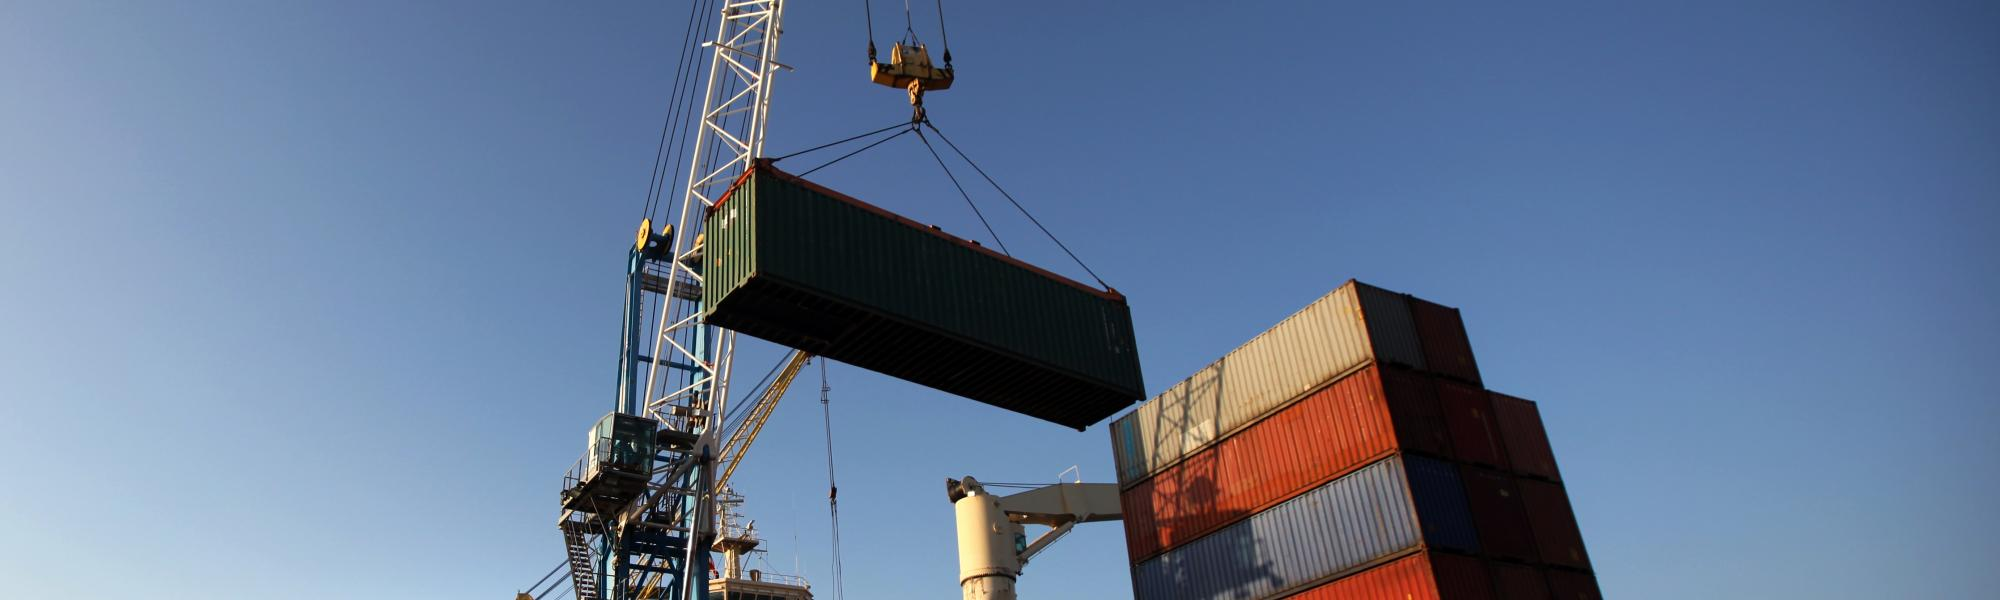 The first intermodal TIR transport from India to Afghanistan via Chabahar port in Iran was completed last week.